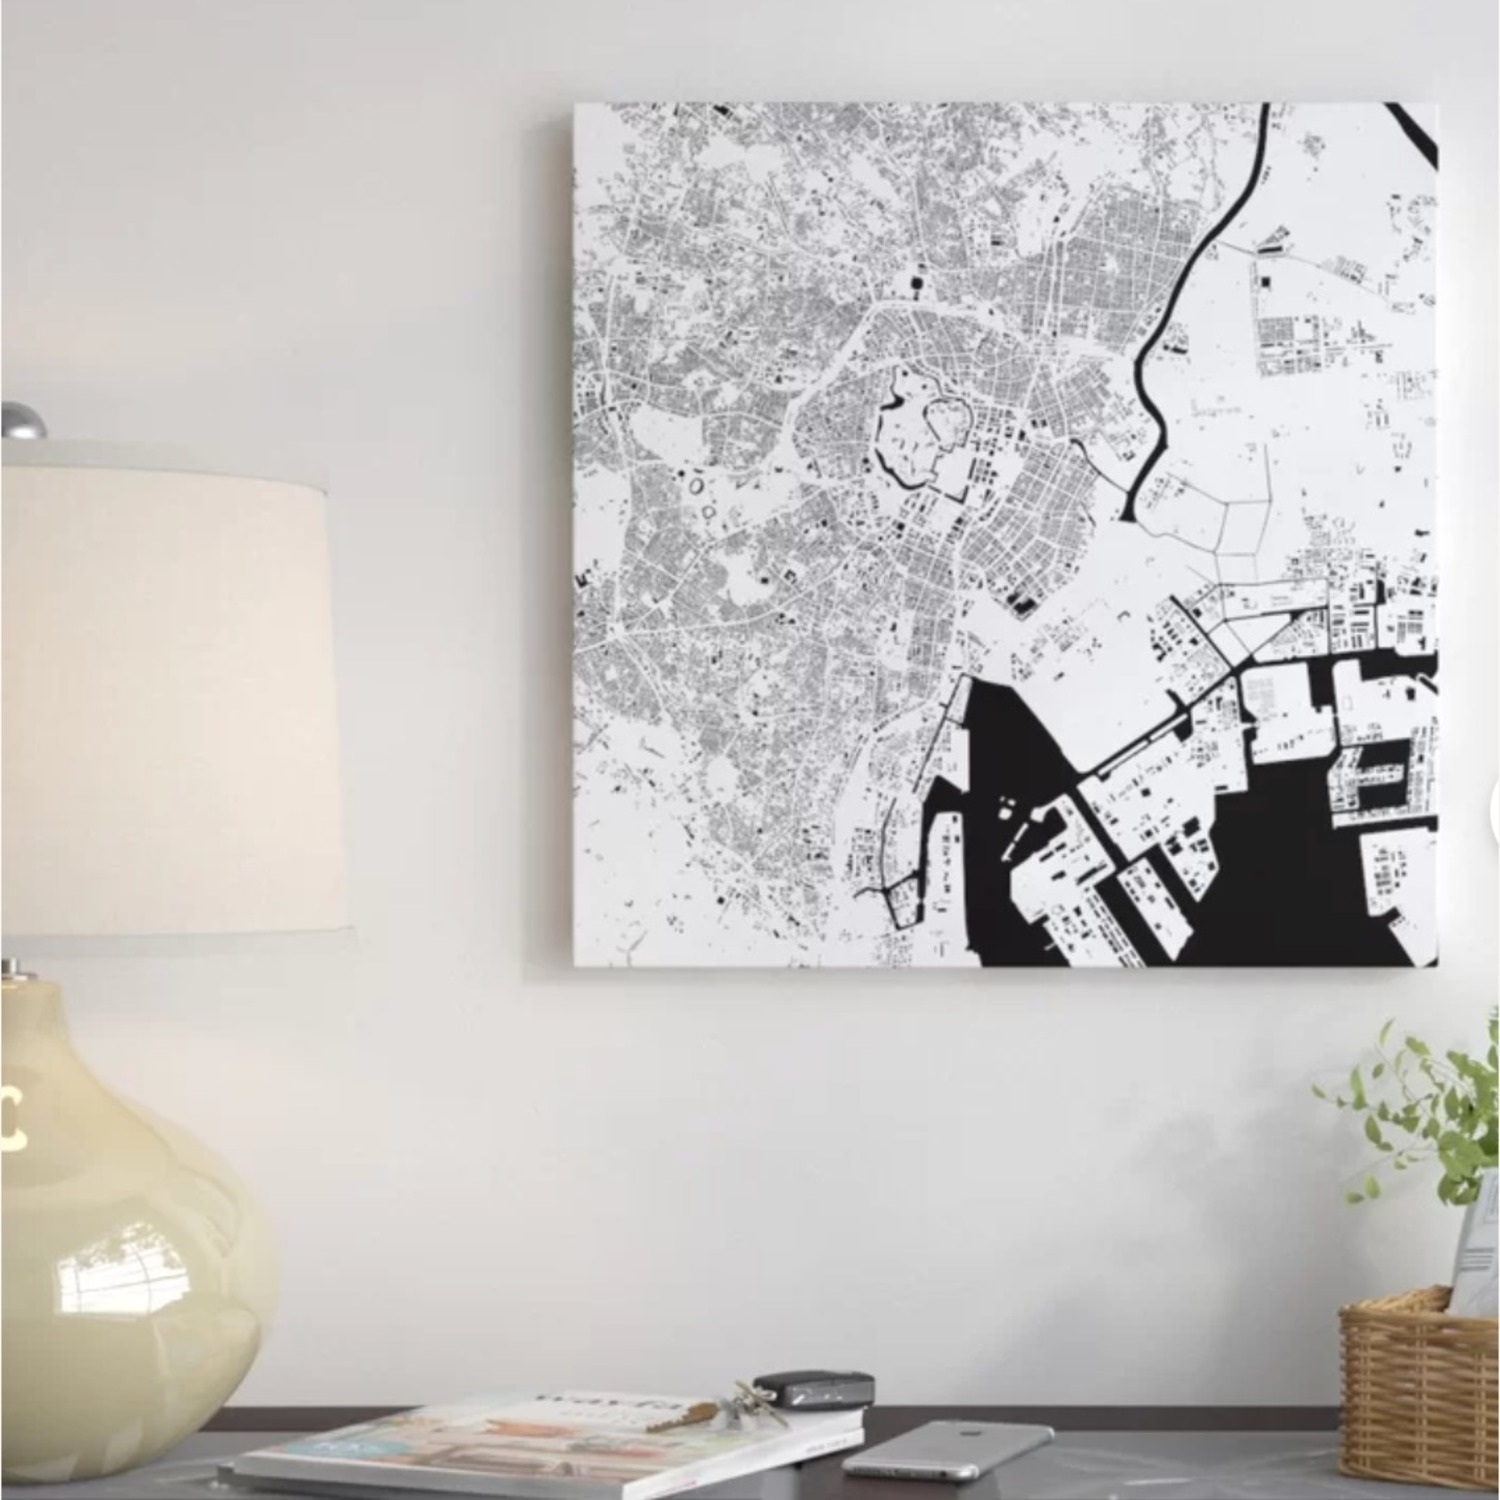 Tokyo Wrapped Canvas Graphic Art - image-1